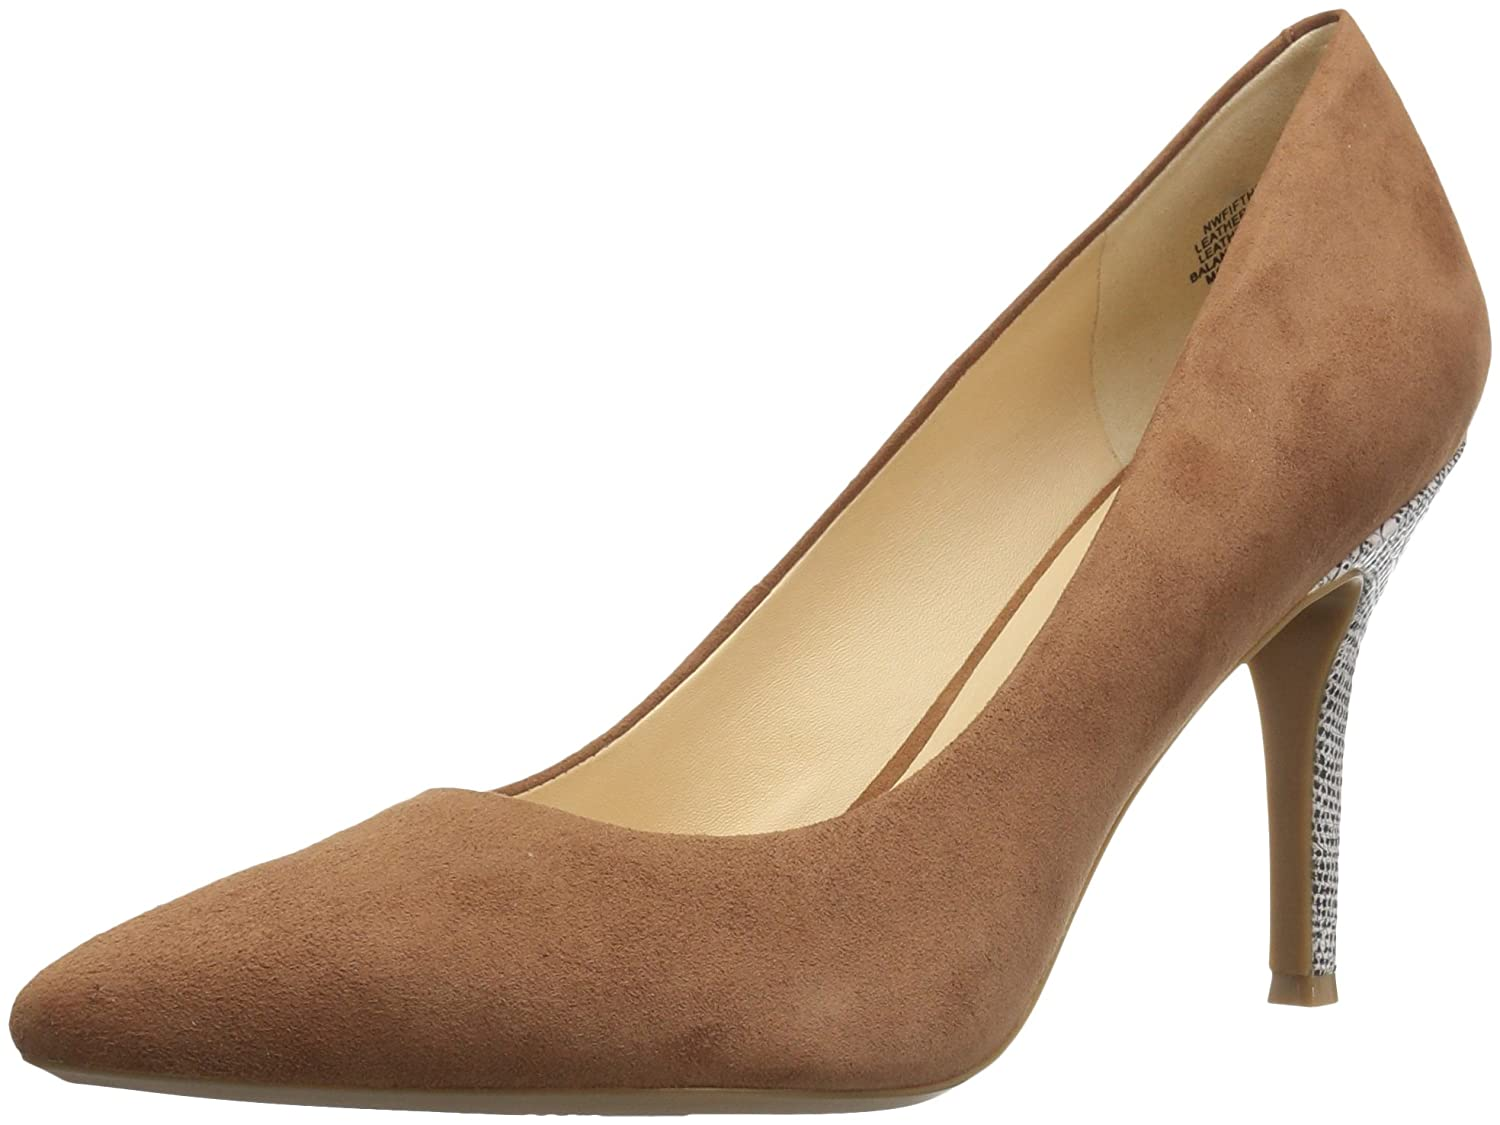 Nine West Women's FIFTH9X Fifth Pointy Toe Pumps B01N6CAMAD 11 B(M) US|Dark Natural Suede